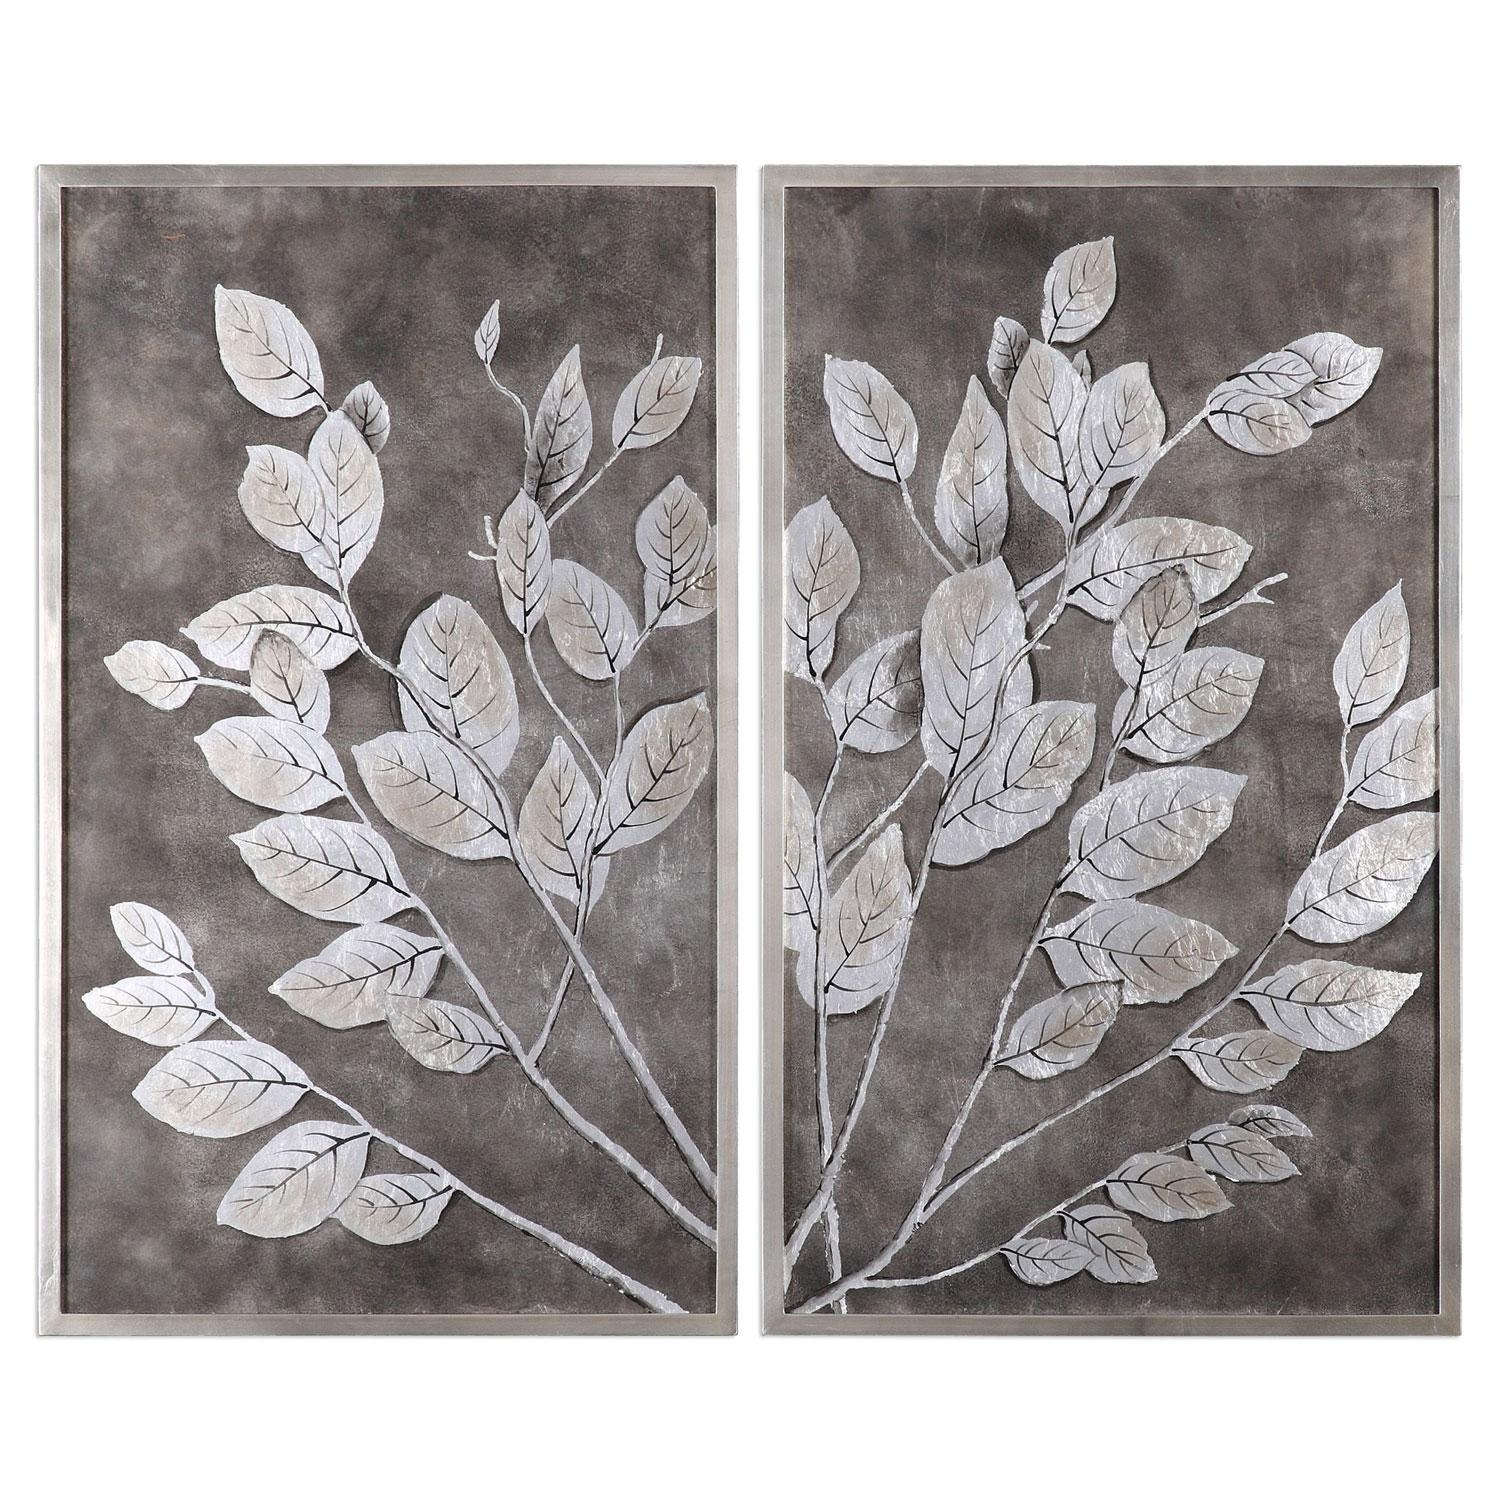 Money Tree Framed Art, Set Of 2 Uttermost Wall Art Wall Art Home Decor Throughout Black And White Wall Art Sets (View 13 of 20)